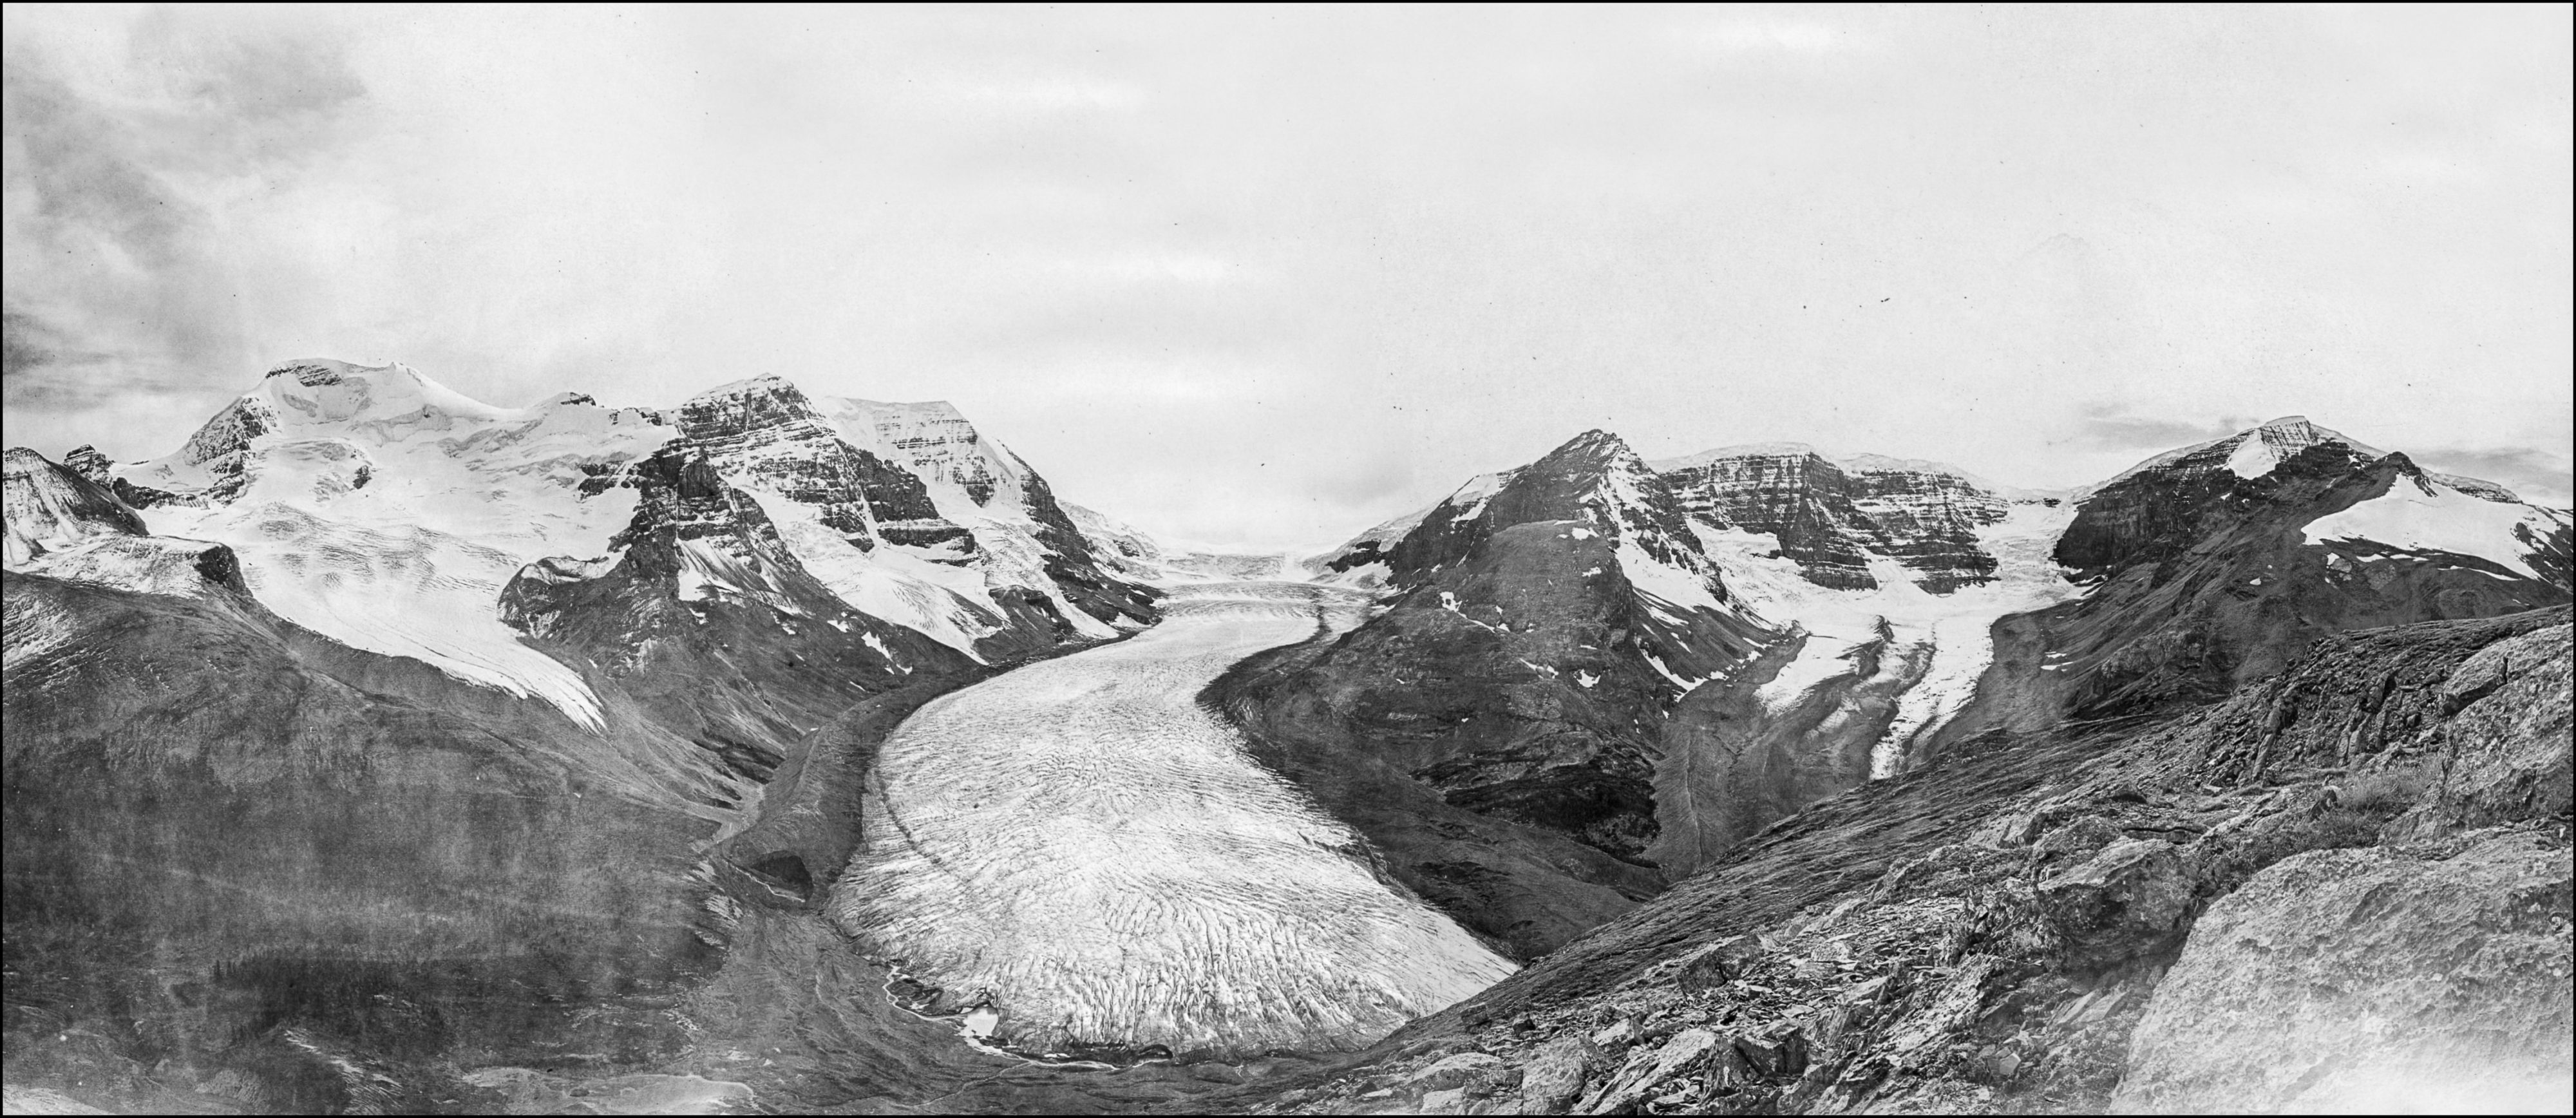 The Athabasca Glacier: A. O. Wheeler, 1917